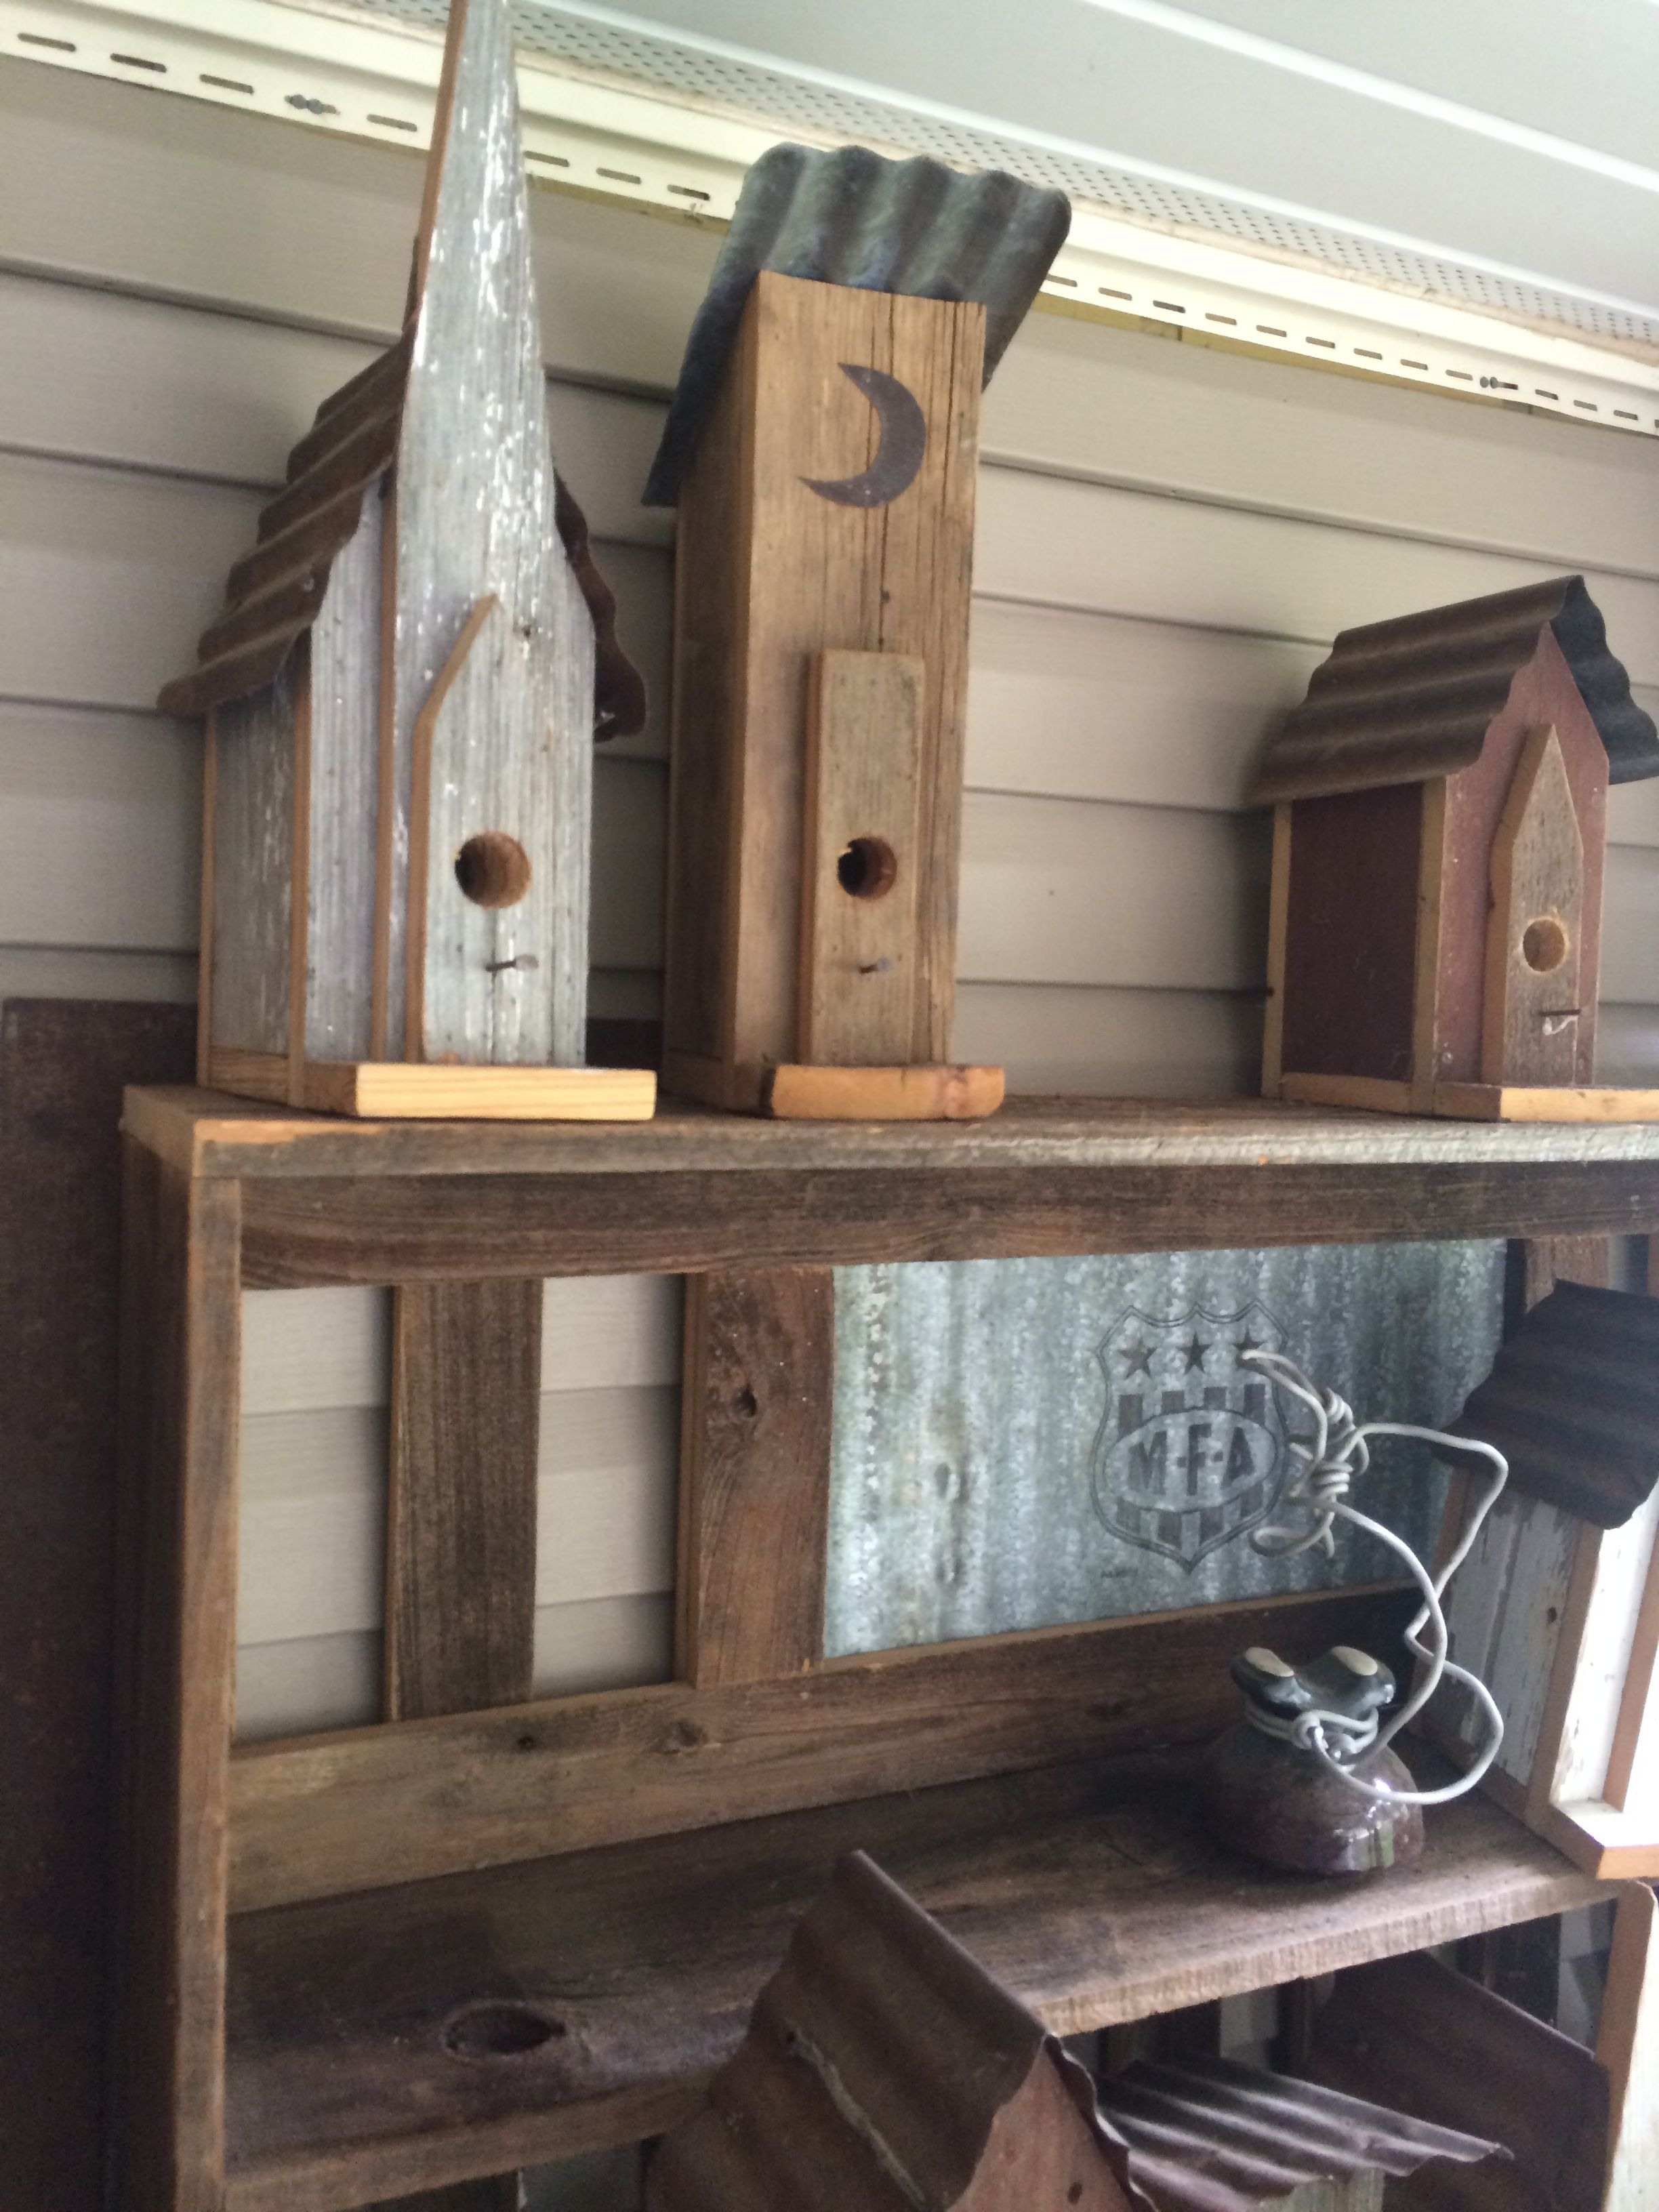 For sale birdhouses Made from old barnwood & tin